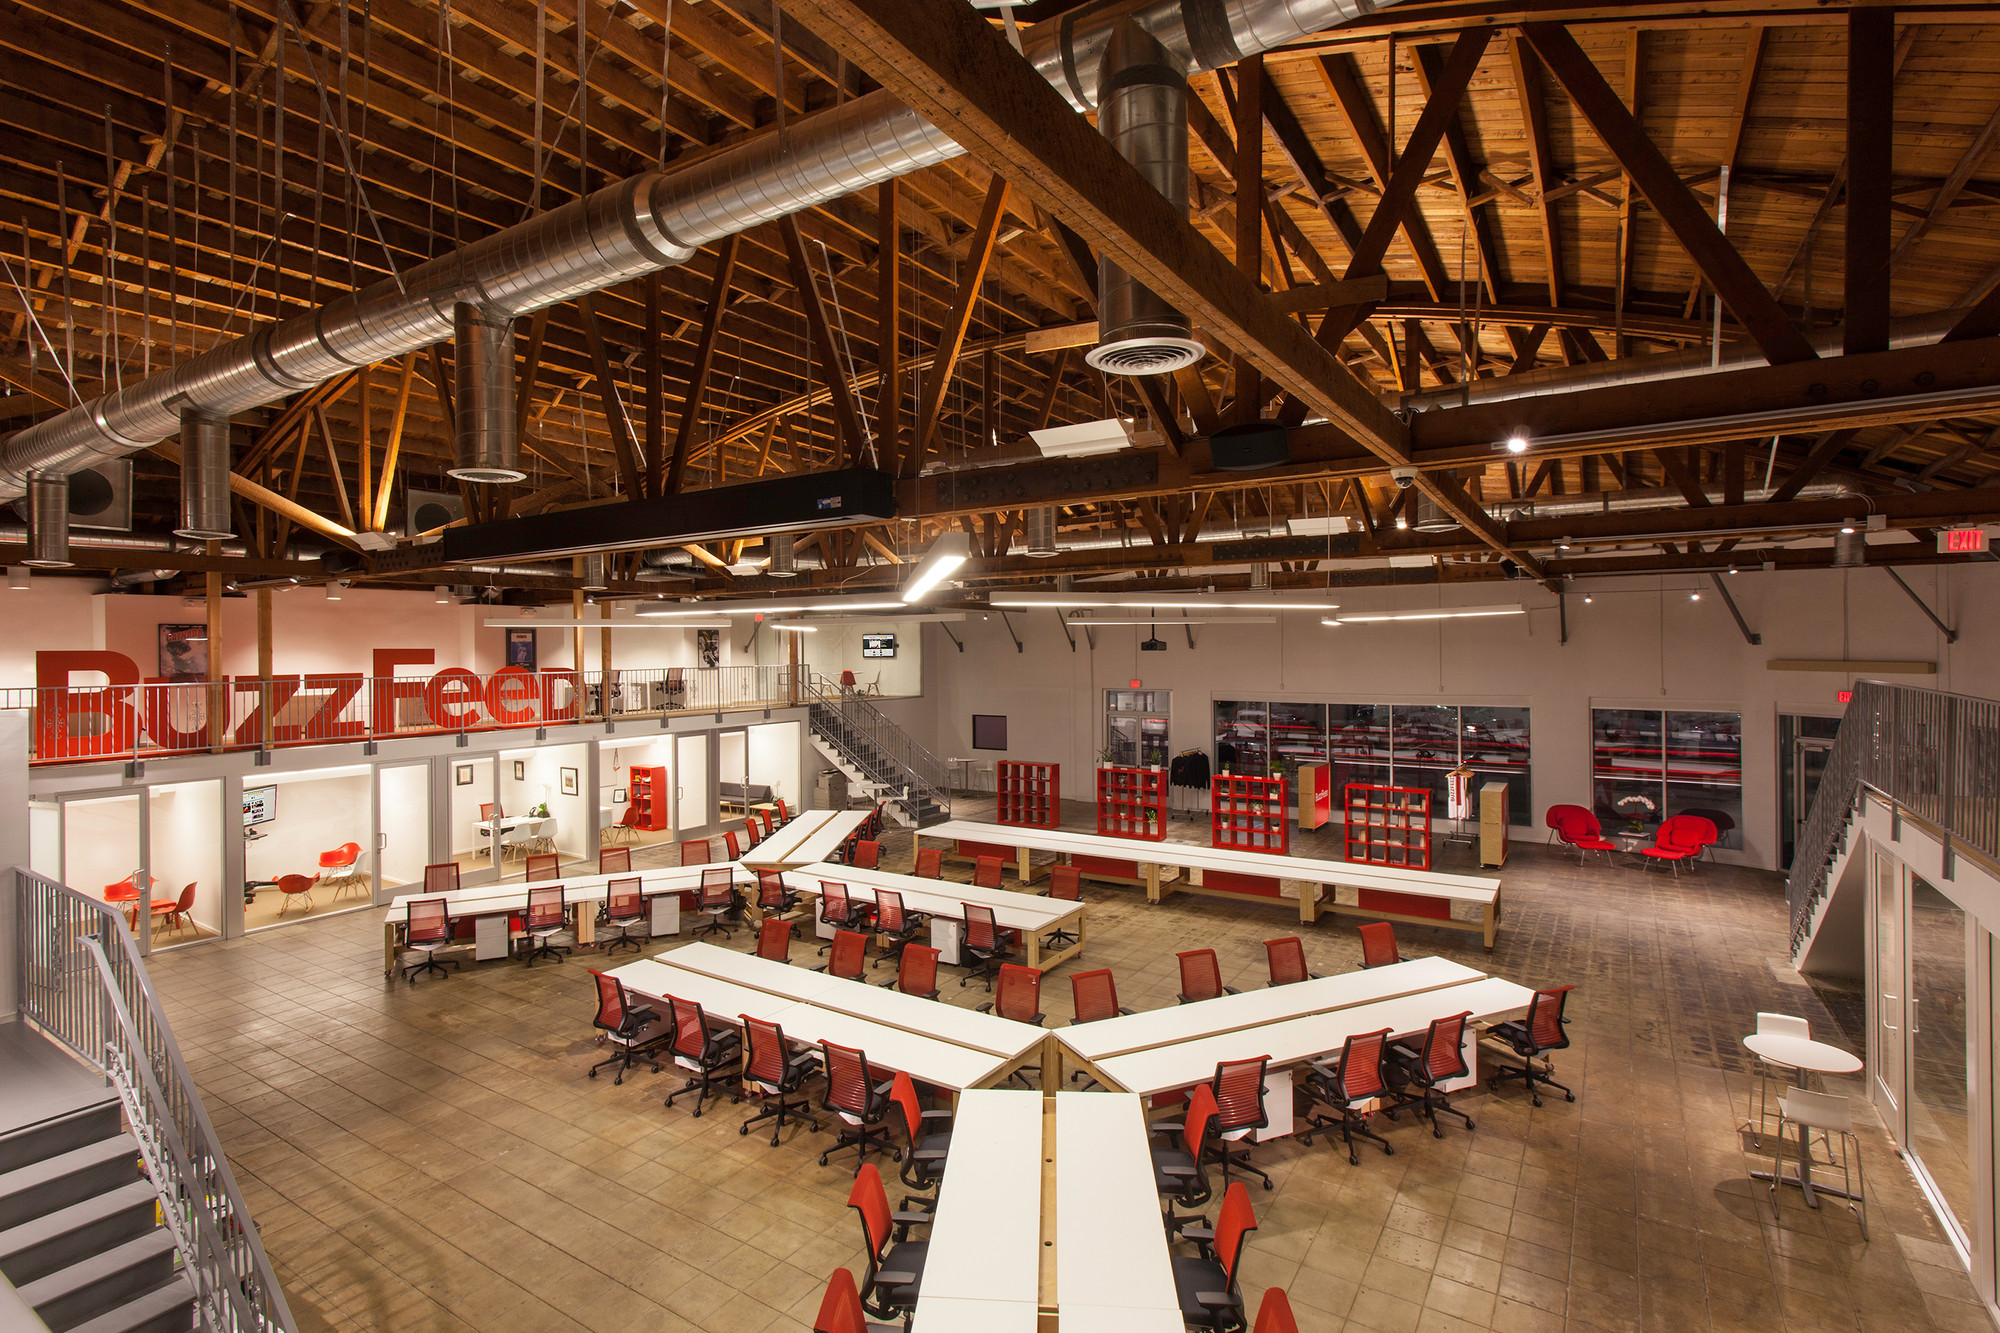 Buzzfeed LA Office / JIDK, © Peter Kubilus